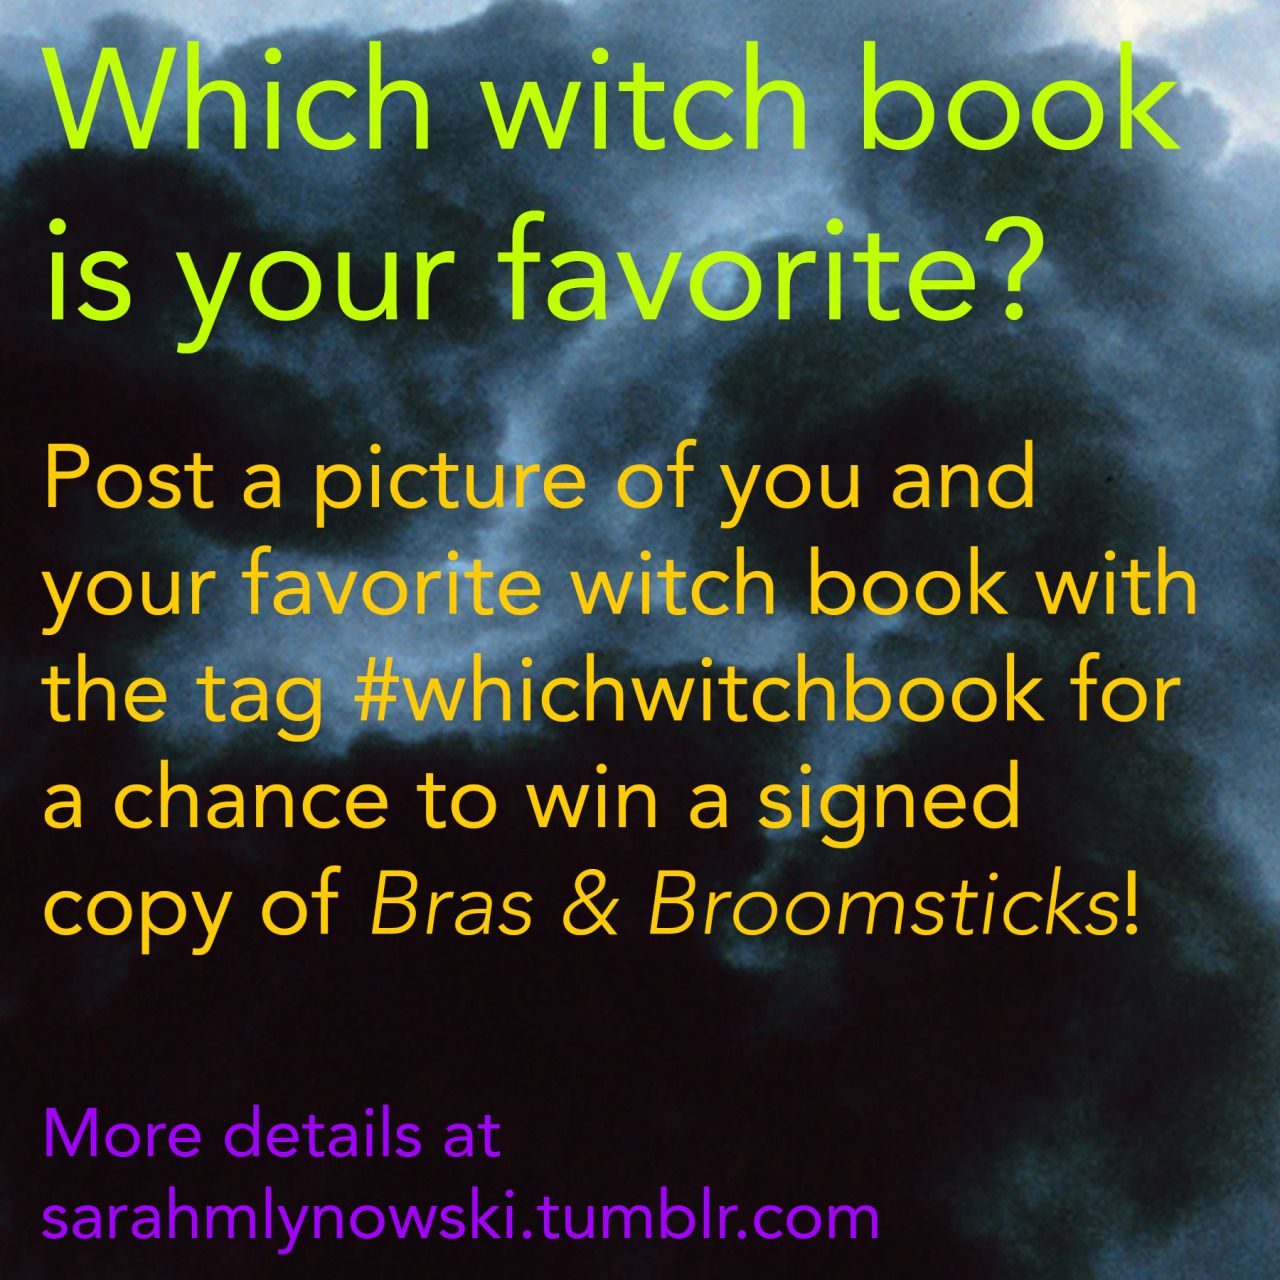 Bras & Broomsticks is turning 10! I'm celebrating with a giveaway! To enter, post a picture of you and your favorite witch book to Twitter, Tumblr, Instagram, or Facebook with the tag #whichwitchbook. Ten people will receive a signed copy of Bras & Broomsticks, and one winner will also receive this special broomstick charm! Important stuff: Be sure to tag your entry with #whichwitchbook! International entries are welcome! Winners will be chosen at random, but you can enter as many times as you'd like. (Just make sure to use a different witch book each time!) The giveaway will end on Sunday, February 22nd.  Yay! Happy Friday the 13th! xo Sarah